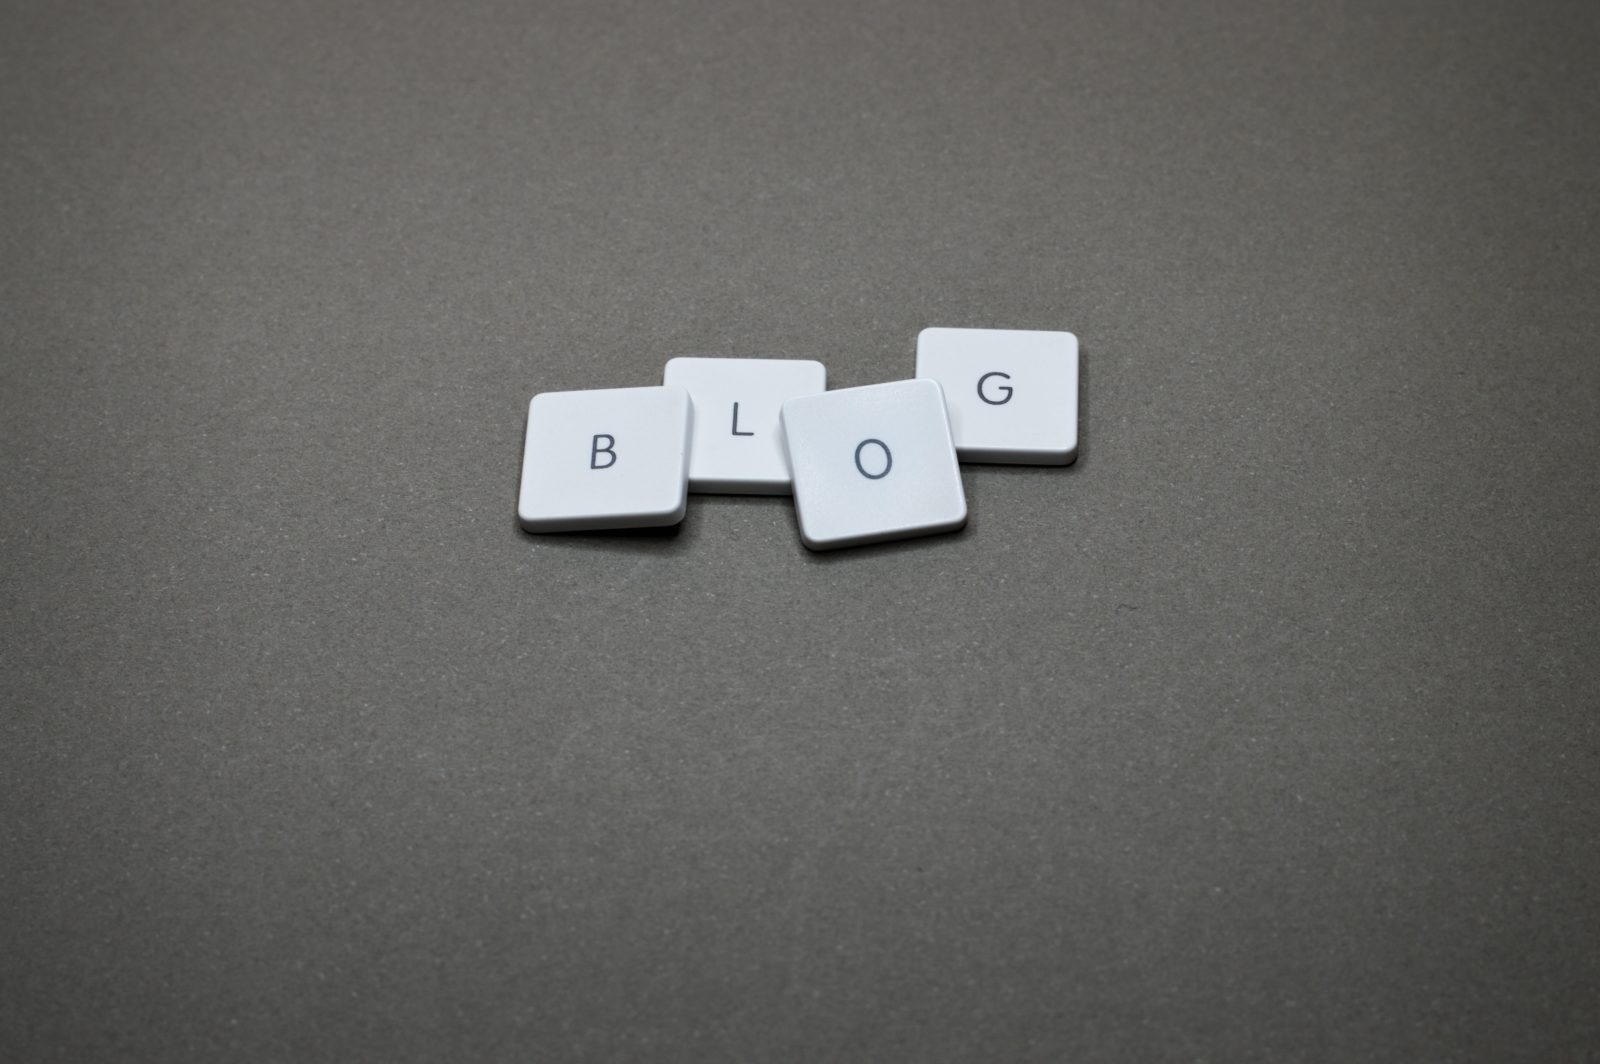 White buttons on a grey background that spell out 'BLOG'.